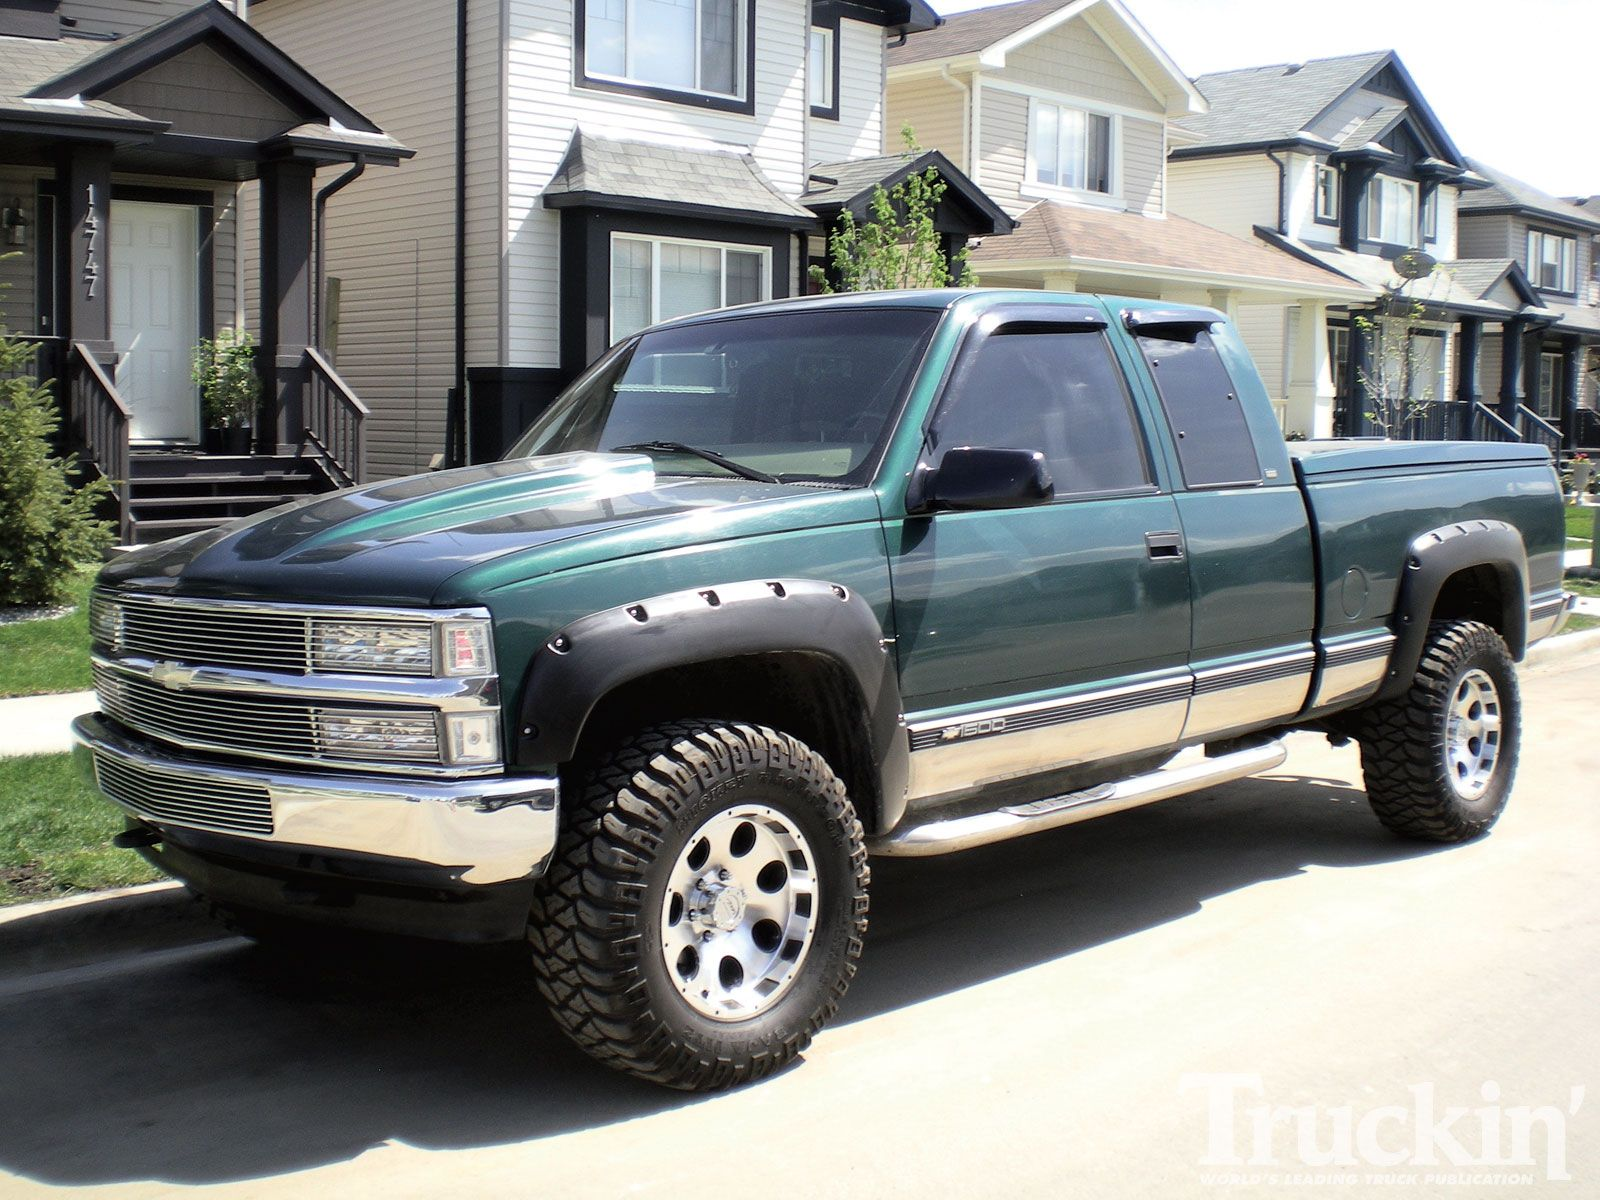 Best 25 1998 chevy silverado ideas only on pinterest z71 truck chevy silverado 1500 and chevy silverado rims